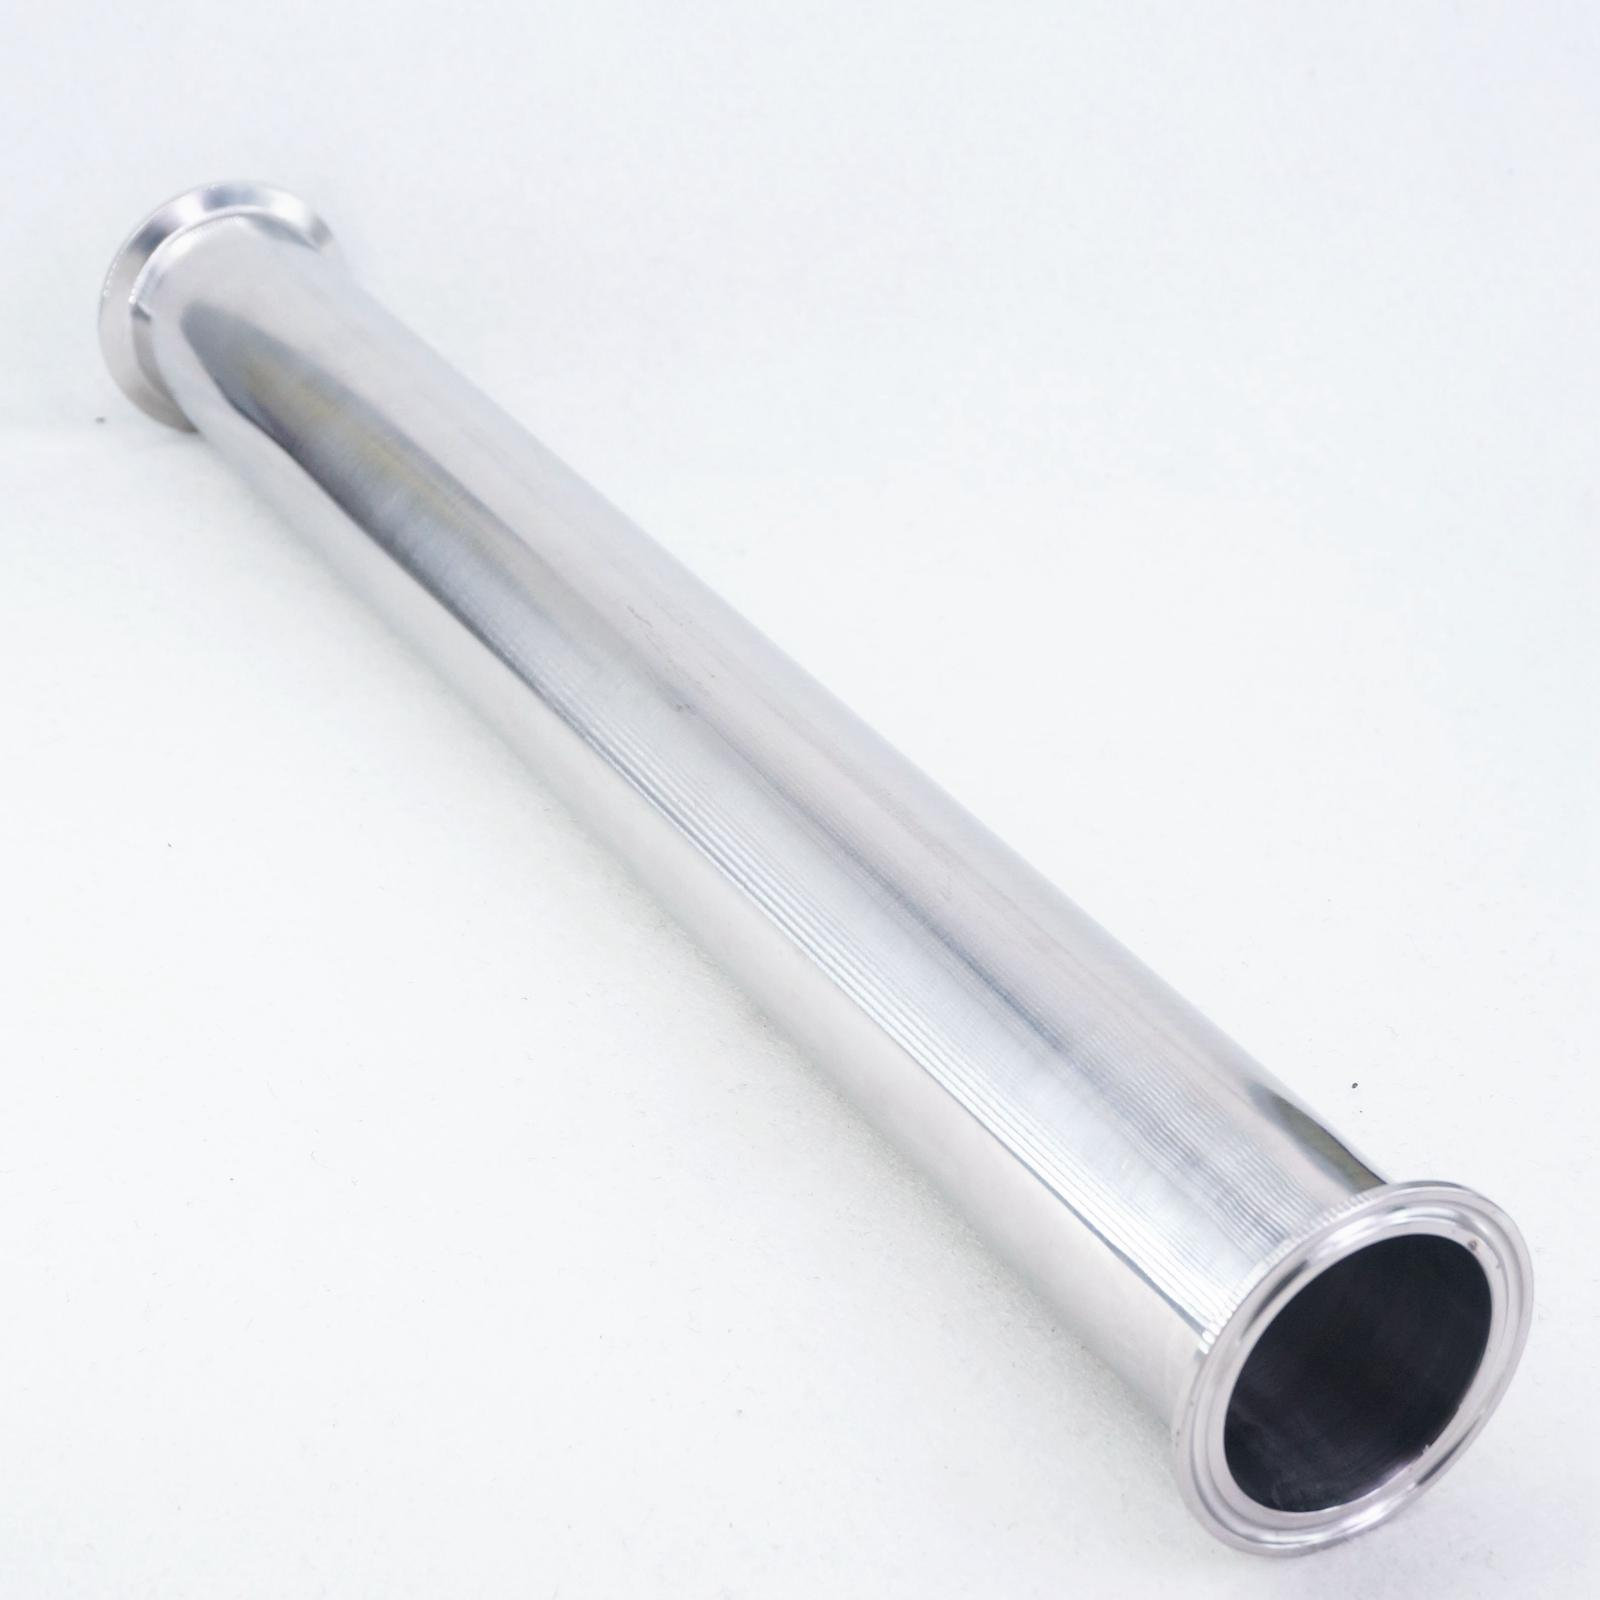 2 Inch Tri Clamp X 51mm OD Pipe Sanitary SUS304 Stainless Steel Spool Tube Length 458Mm(18 Inch)